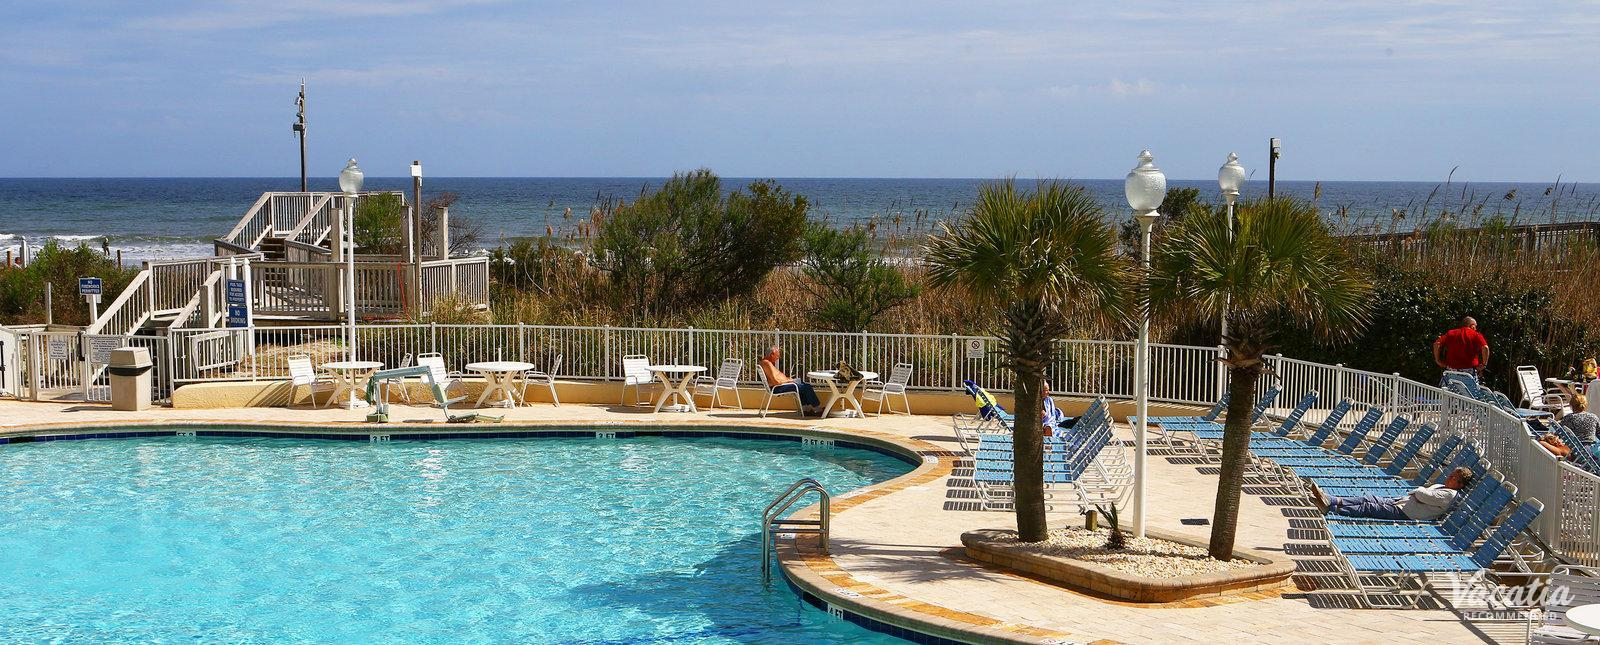 Sea Watch Resort Pools